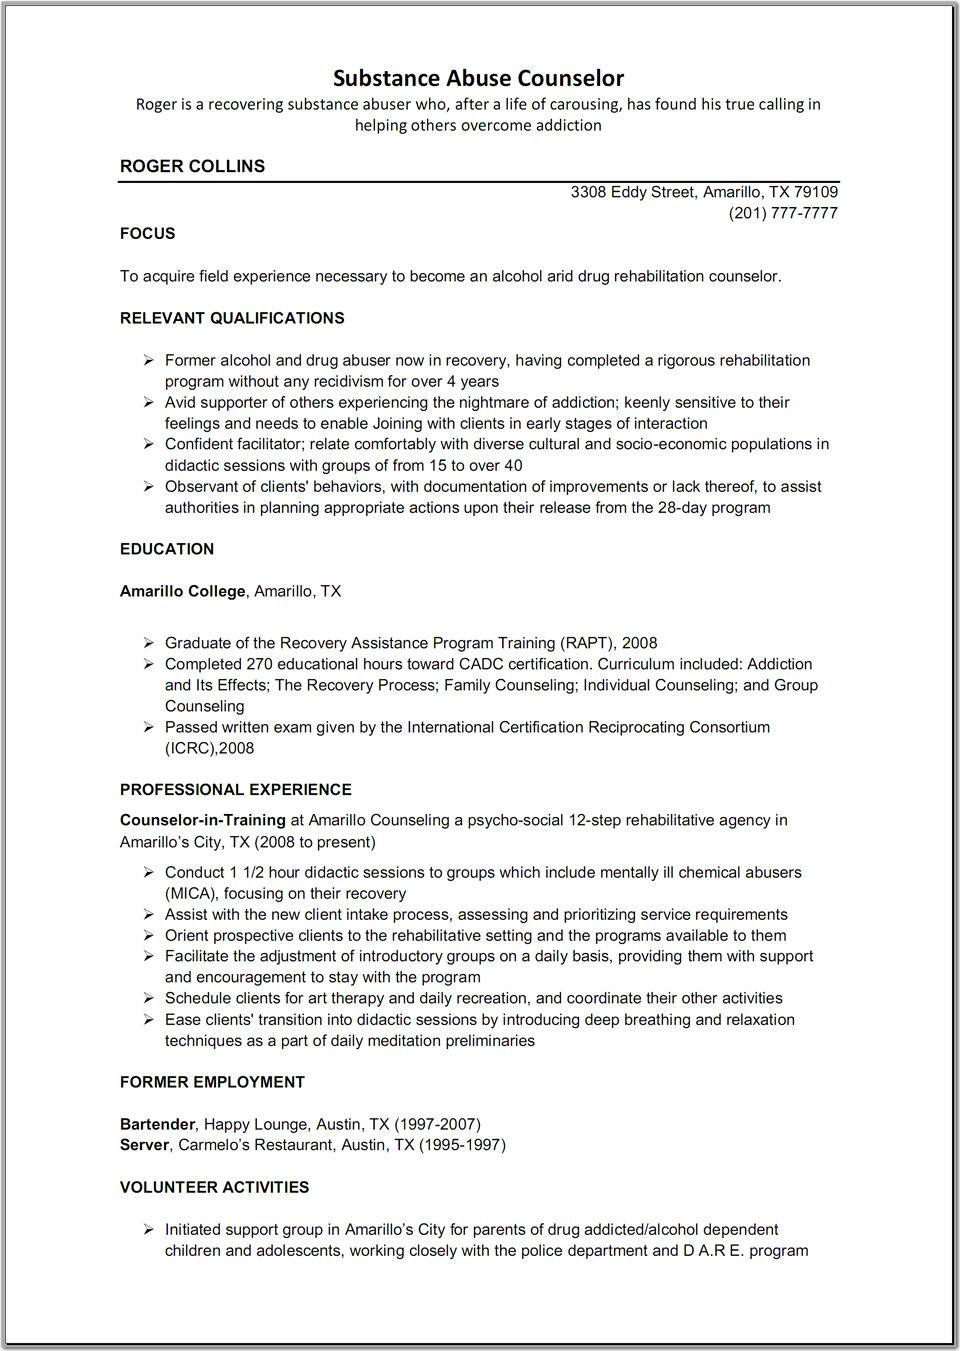 Substance Abuse Counselor Resume Template | resume template | Pinterest